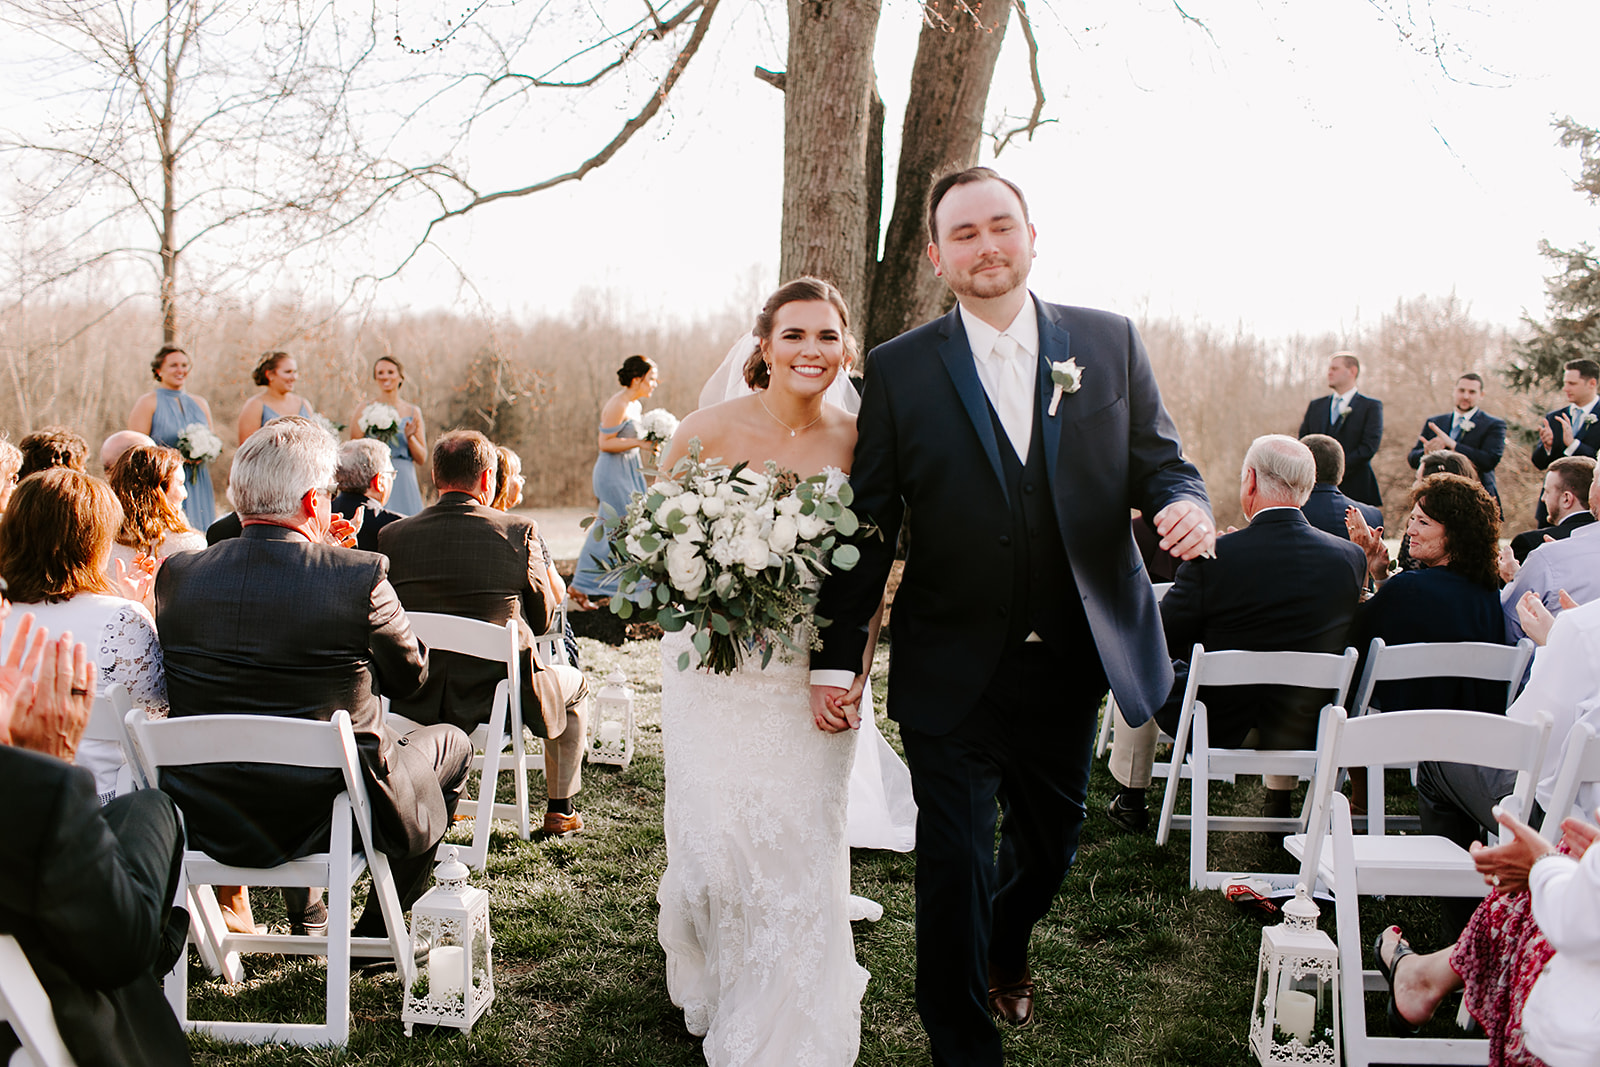 Lauren_and_Andrew_Mustard_Seed_Gardens_Noblesville_Indiana_by_Emily_Wehner_Photography-561.jpg